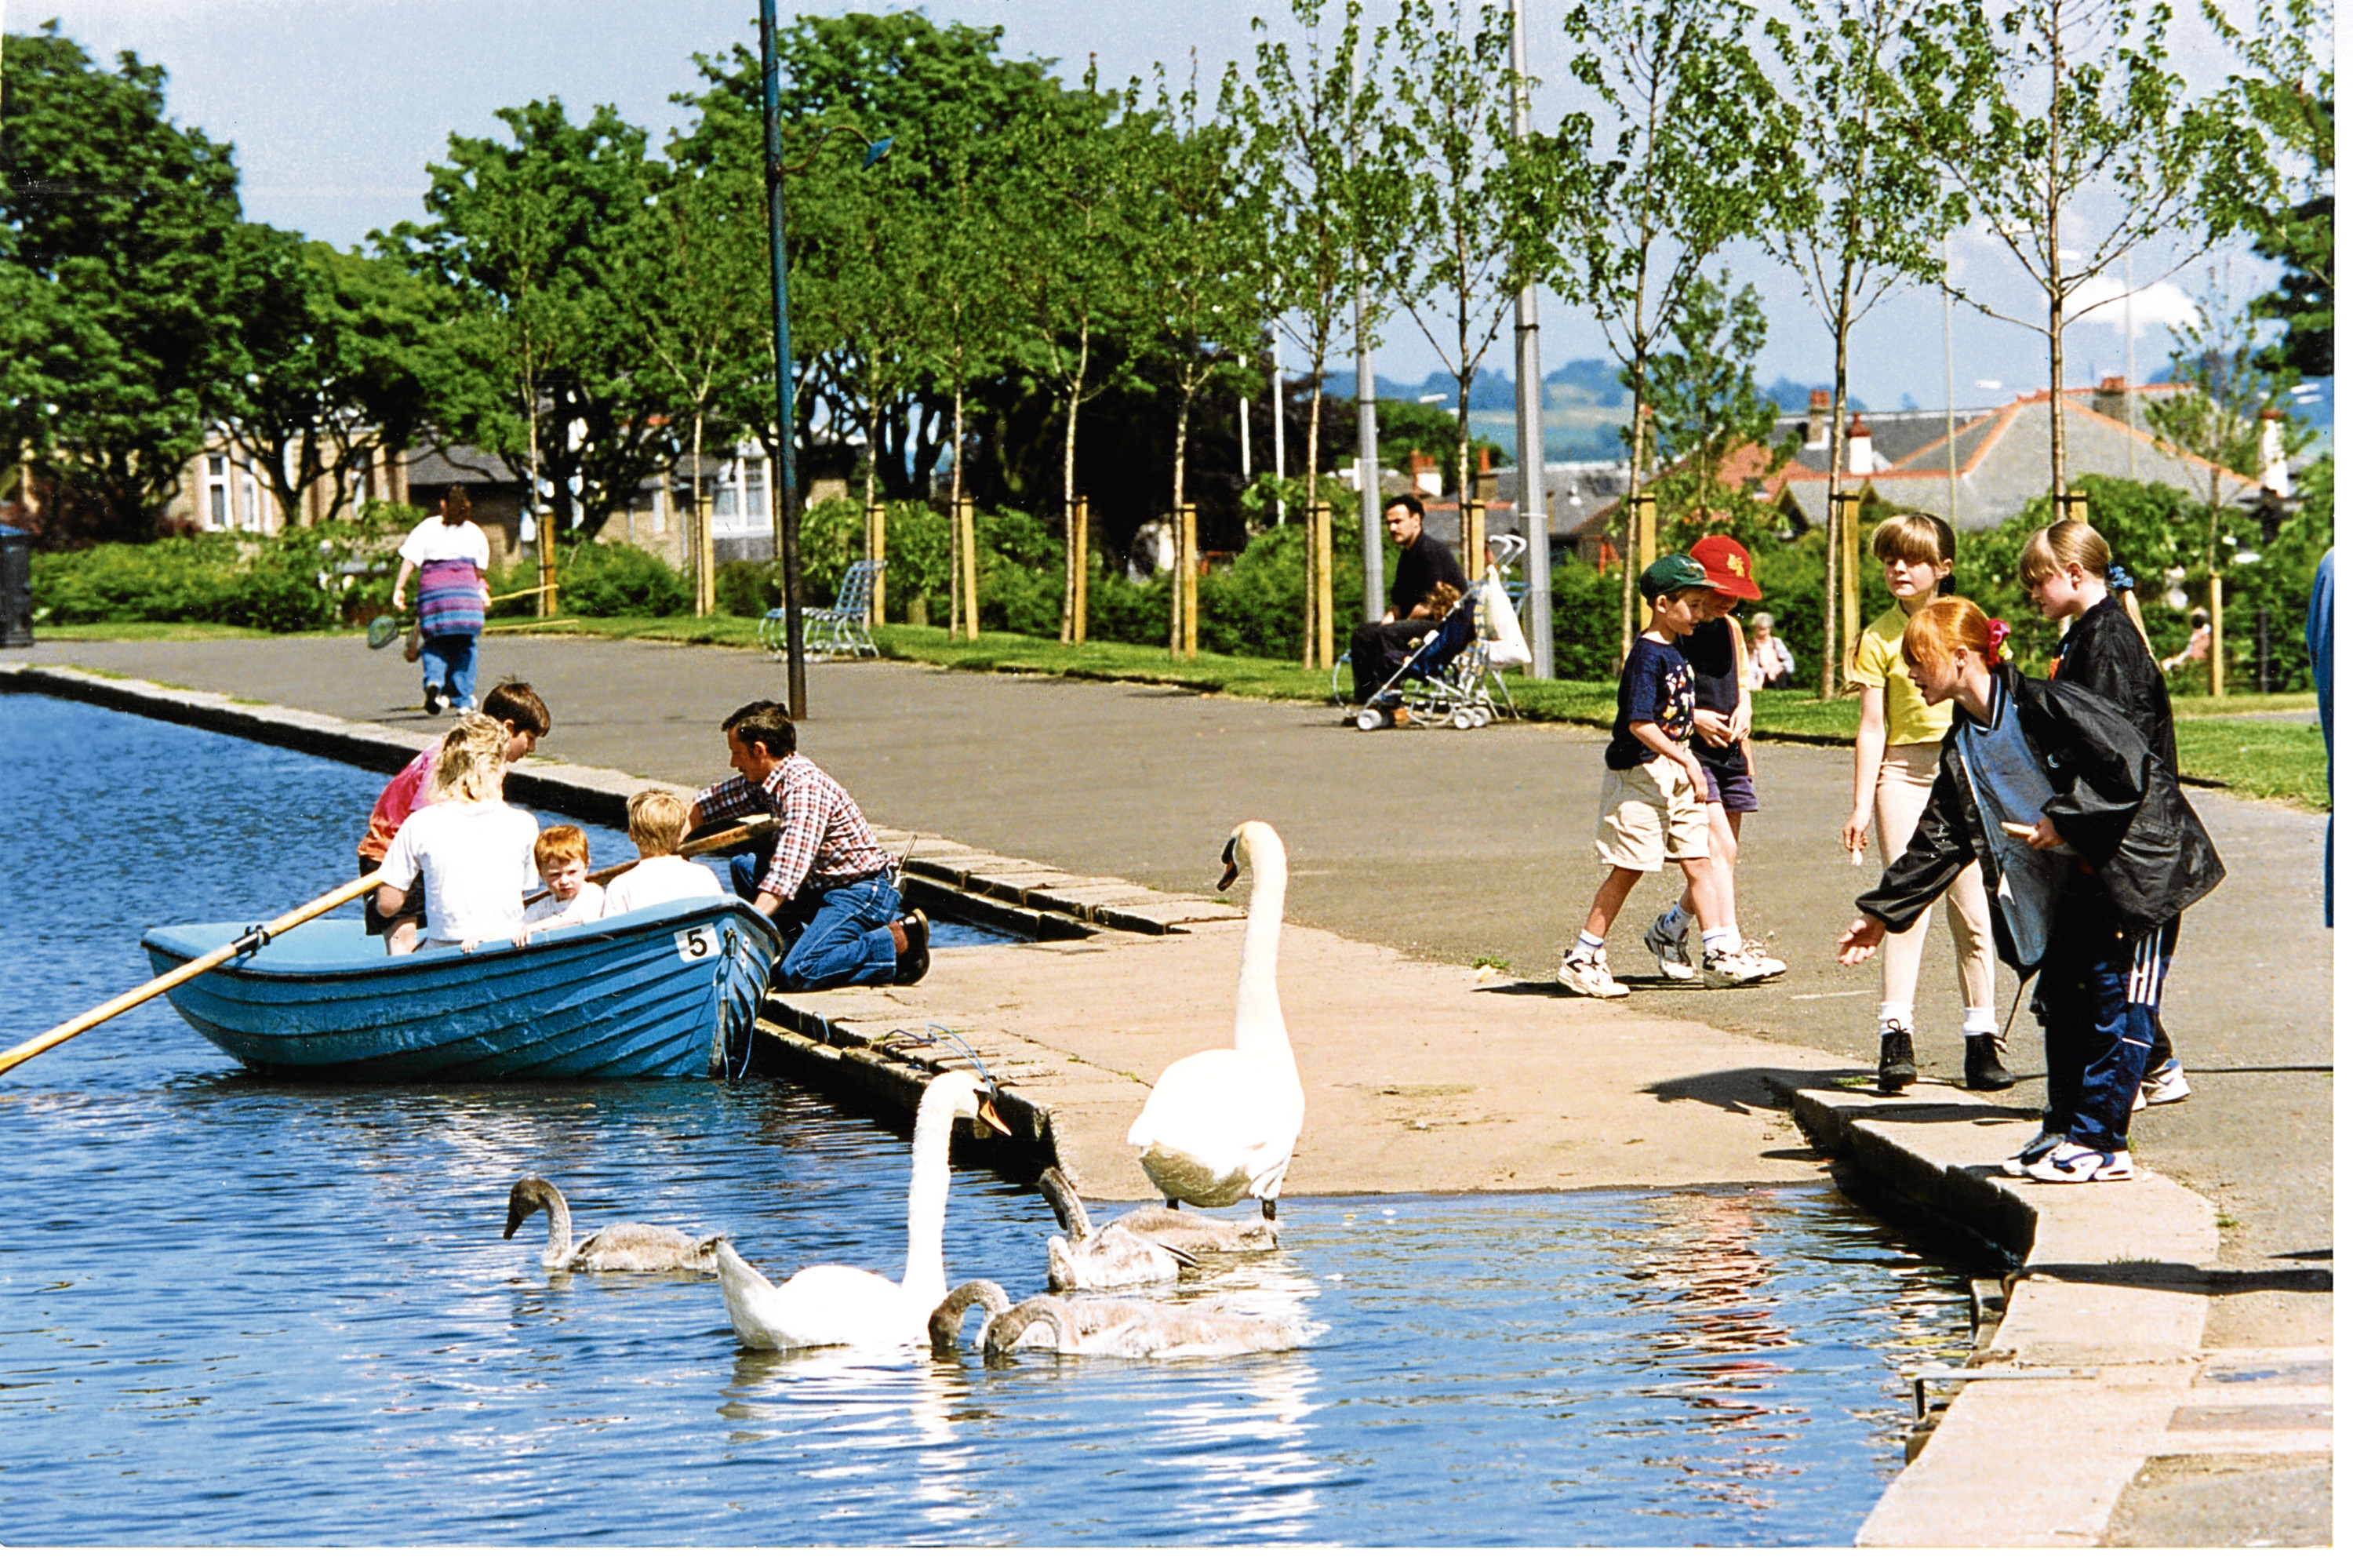 Back in the Day Saturday 28 April  Feeding the Swans. Photograph shows a group of children enjoying the sunny day at Stobsmuir Pond, Dundee, while feeding the bevy of Swans nearby. 8 July 1996. H262 1996-07-08 Feeding the Swans (C)DCT Dundonian. Used in Courier L/ED 9 July 1996.